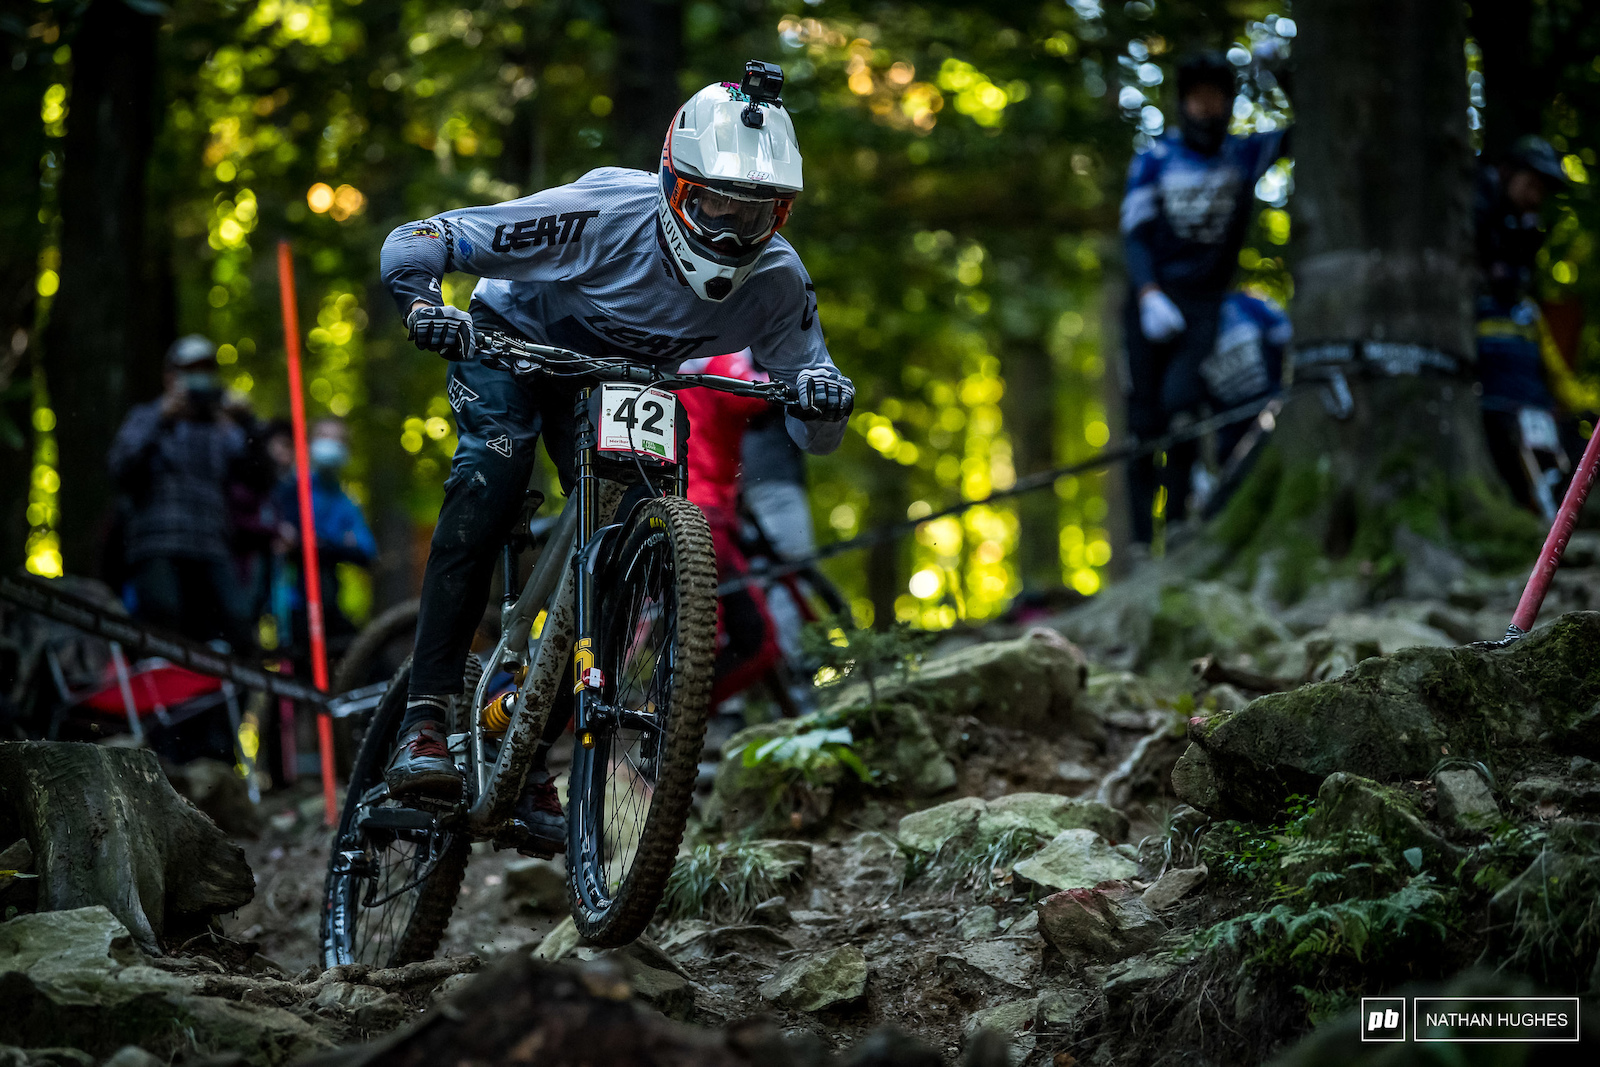 Andreas Kolb smashed into the hot seat and held on to a career-best 15th place pipping fellow Austrian David Trummer.